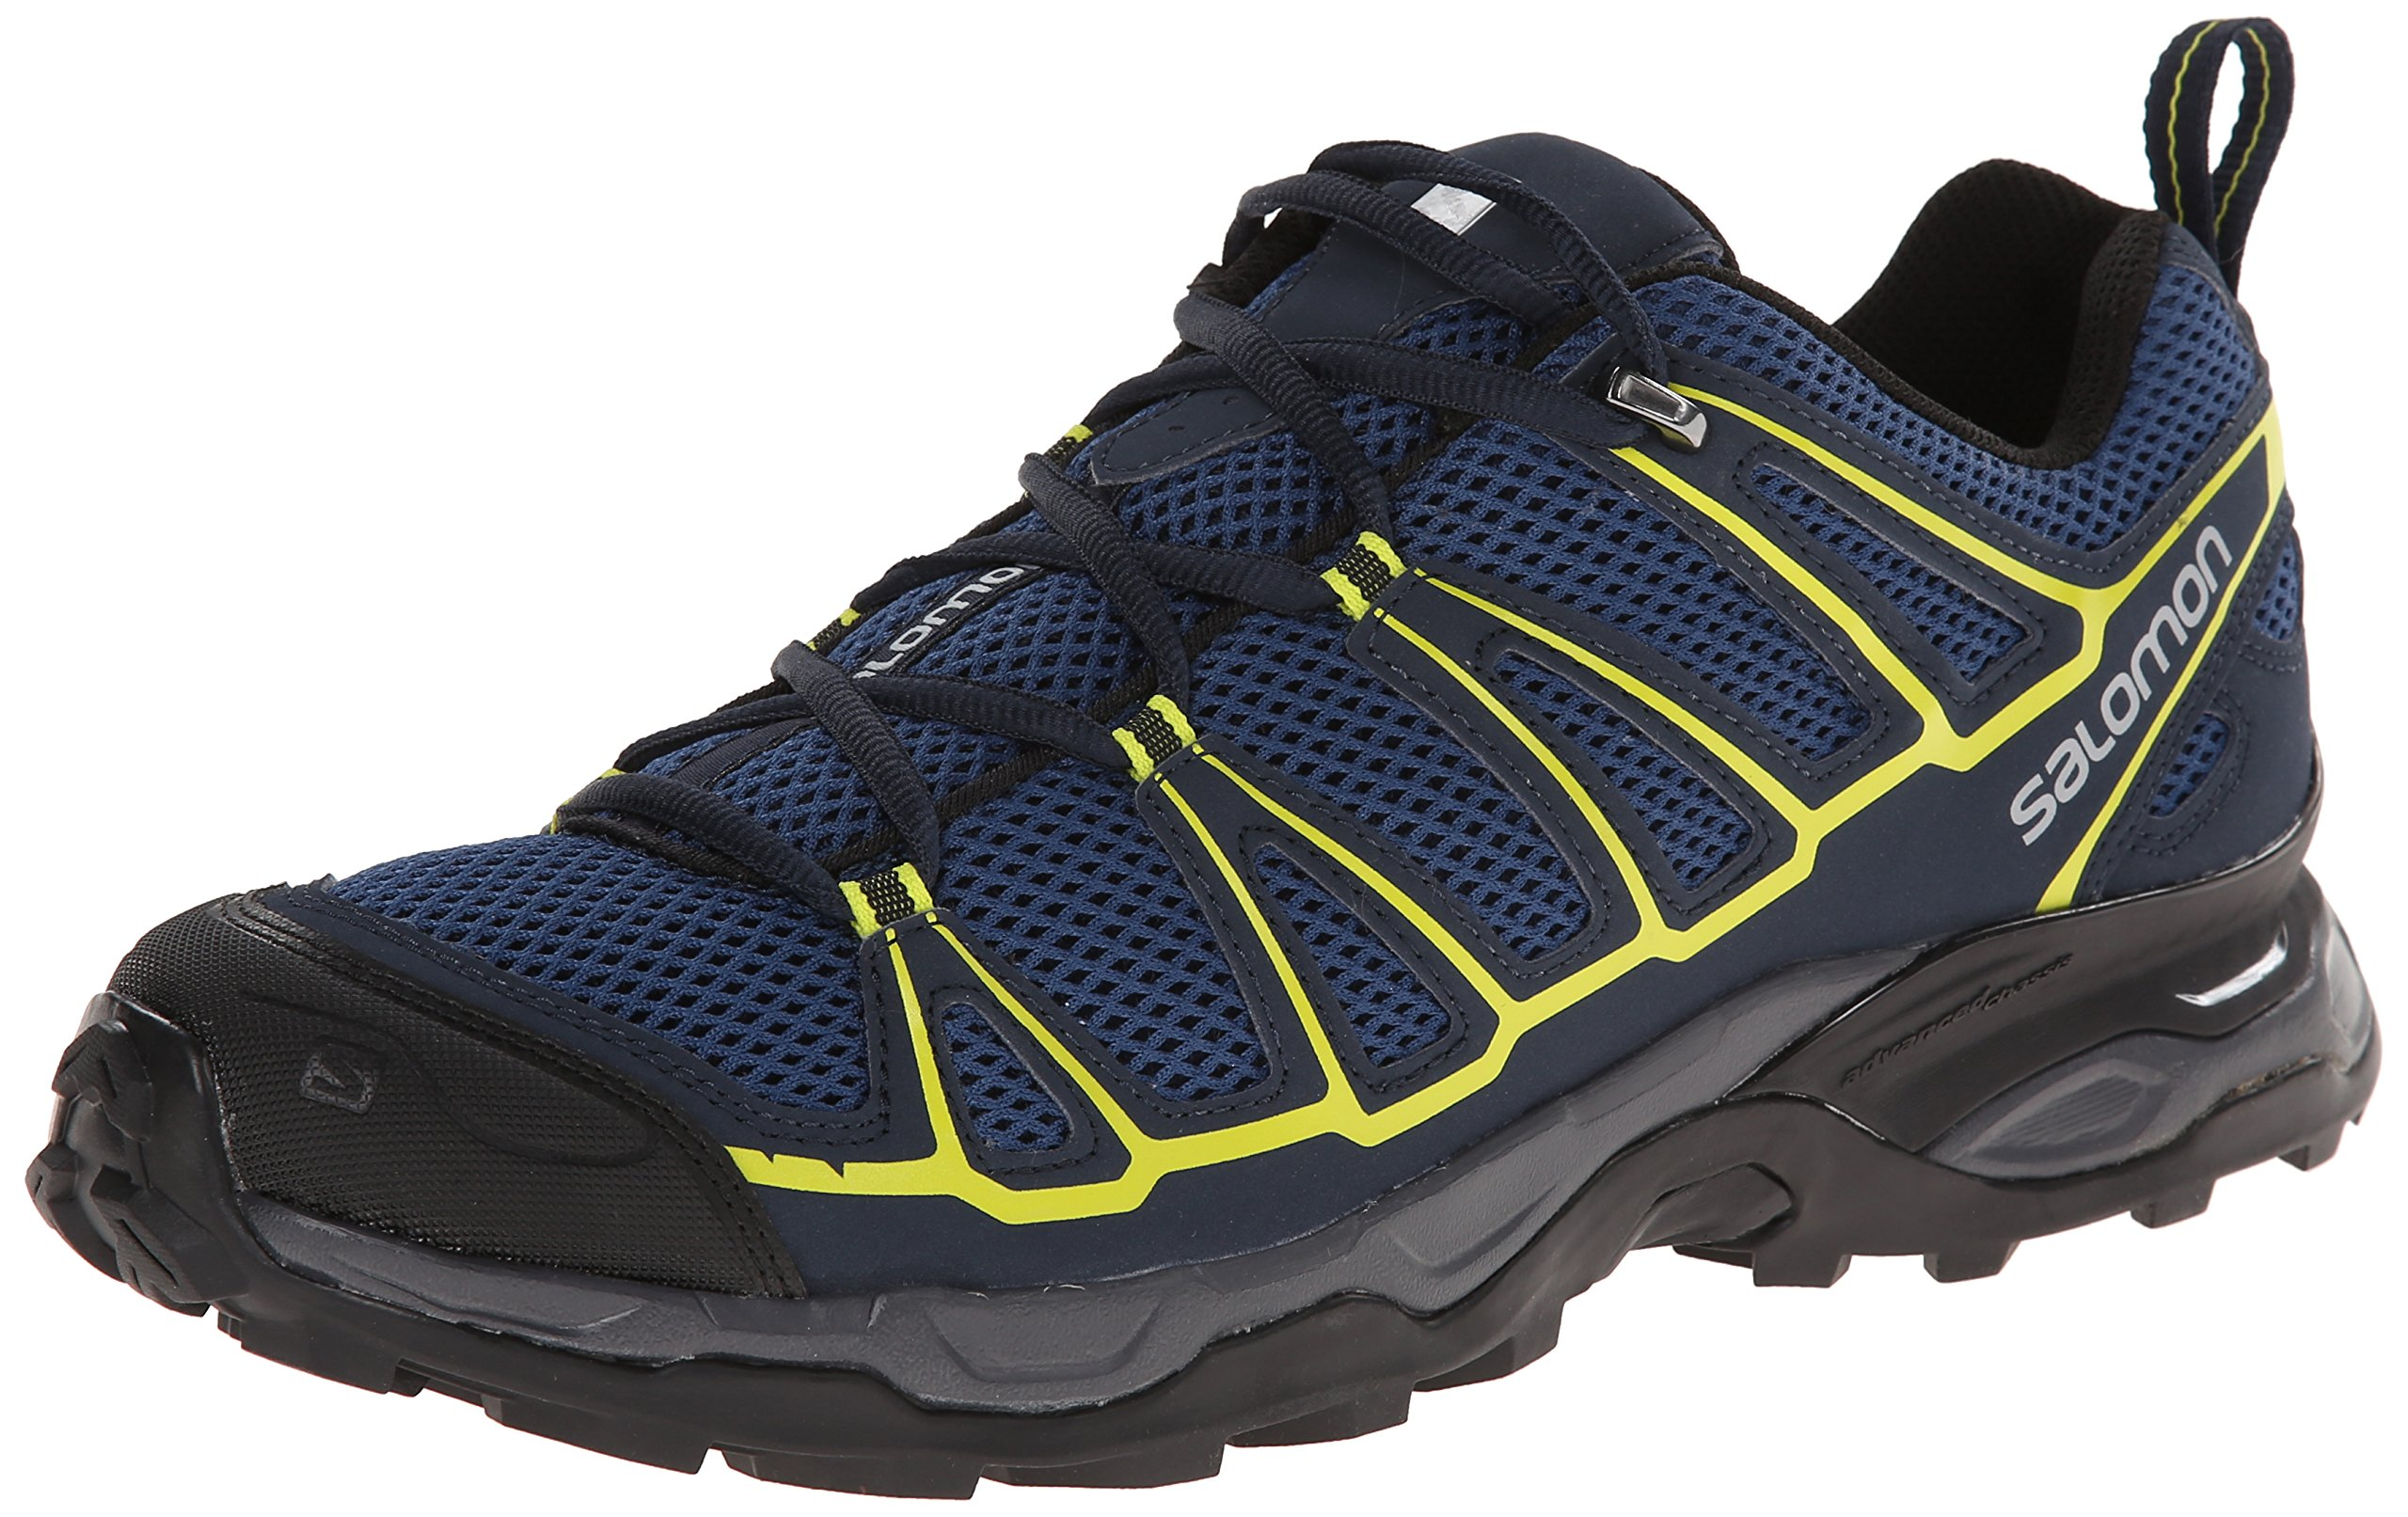 Salomon Men's X Ultra Prime Multifunctional Hiking Shoe, Fjord/Deep Blue/Gecko Green, 7 M US by Salomon